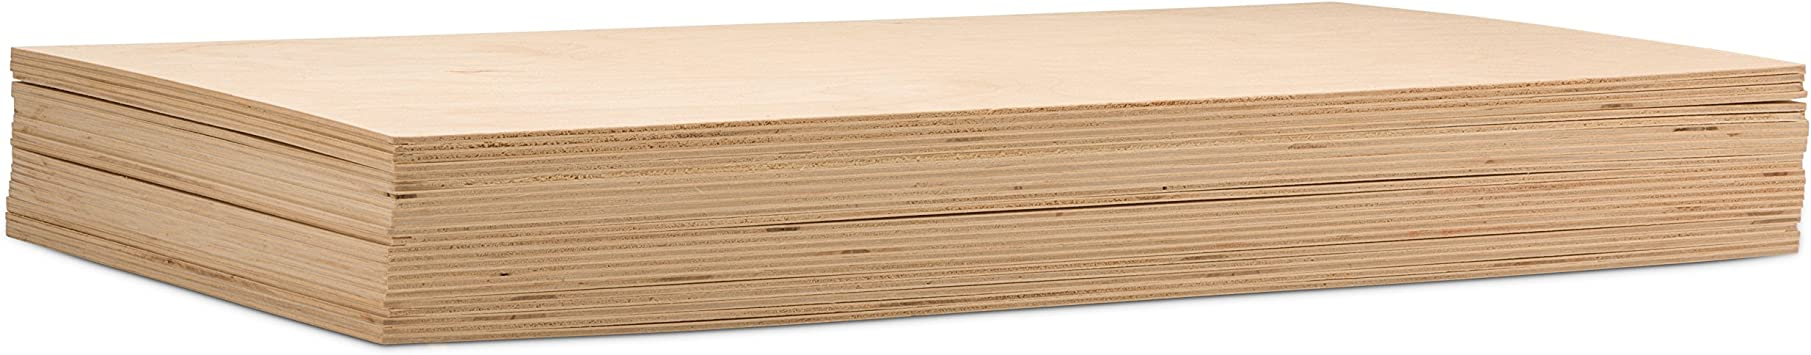 Wood Burning and Laser Projects B//BB Grade Perfect for Arts and Crafts Wood Engraving 6MM 1//4 x 12 x 12 Premium Baltic Birch Plywood Painting School Projects and DIY Projects Package of 3 Drawing